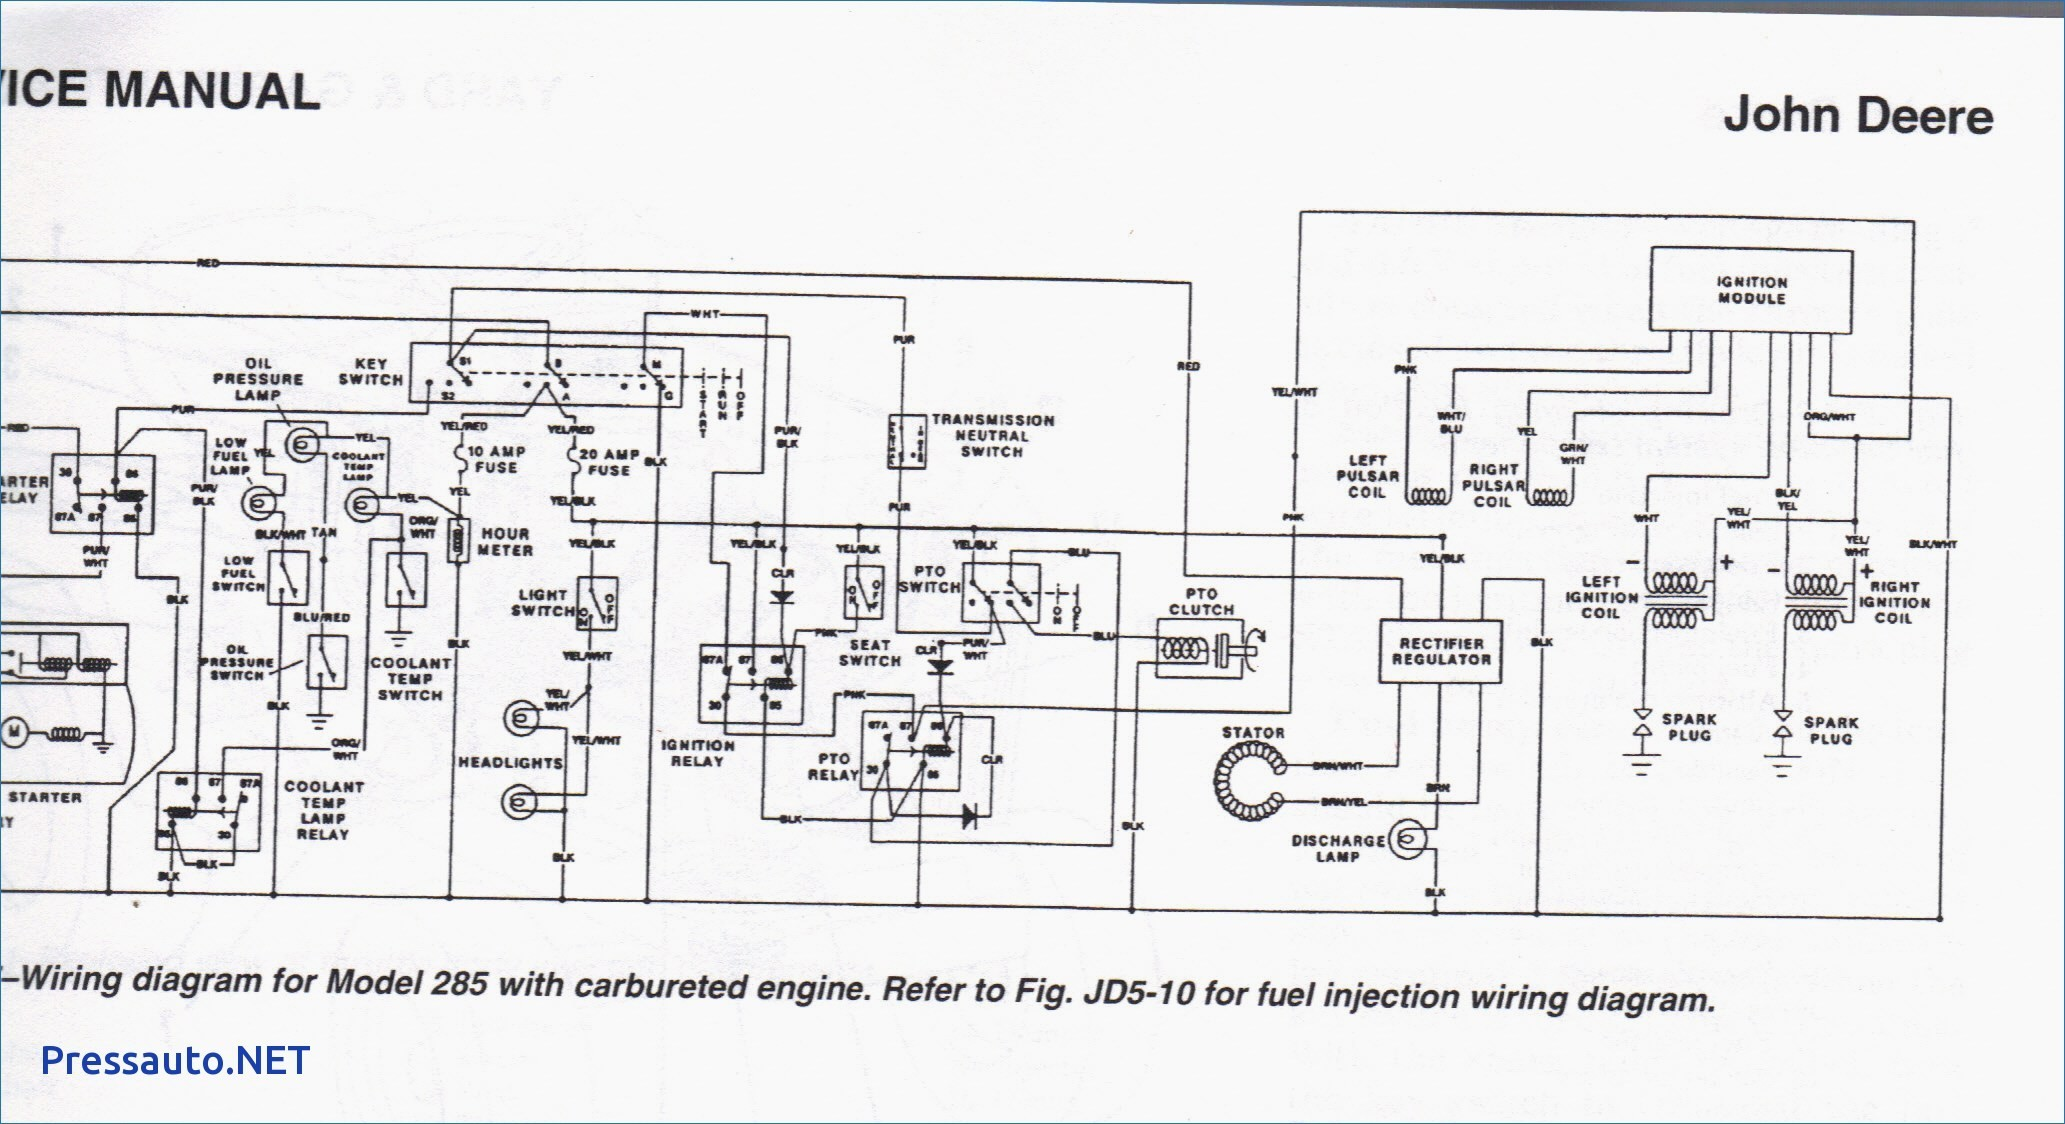 ... 4230 Wiring Diagram Source · john deere 4040 ignition wiring diagram  example electrical wiring rh 162 212 157 63 John Deere